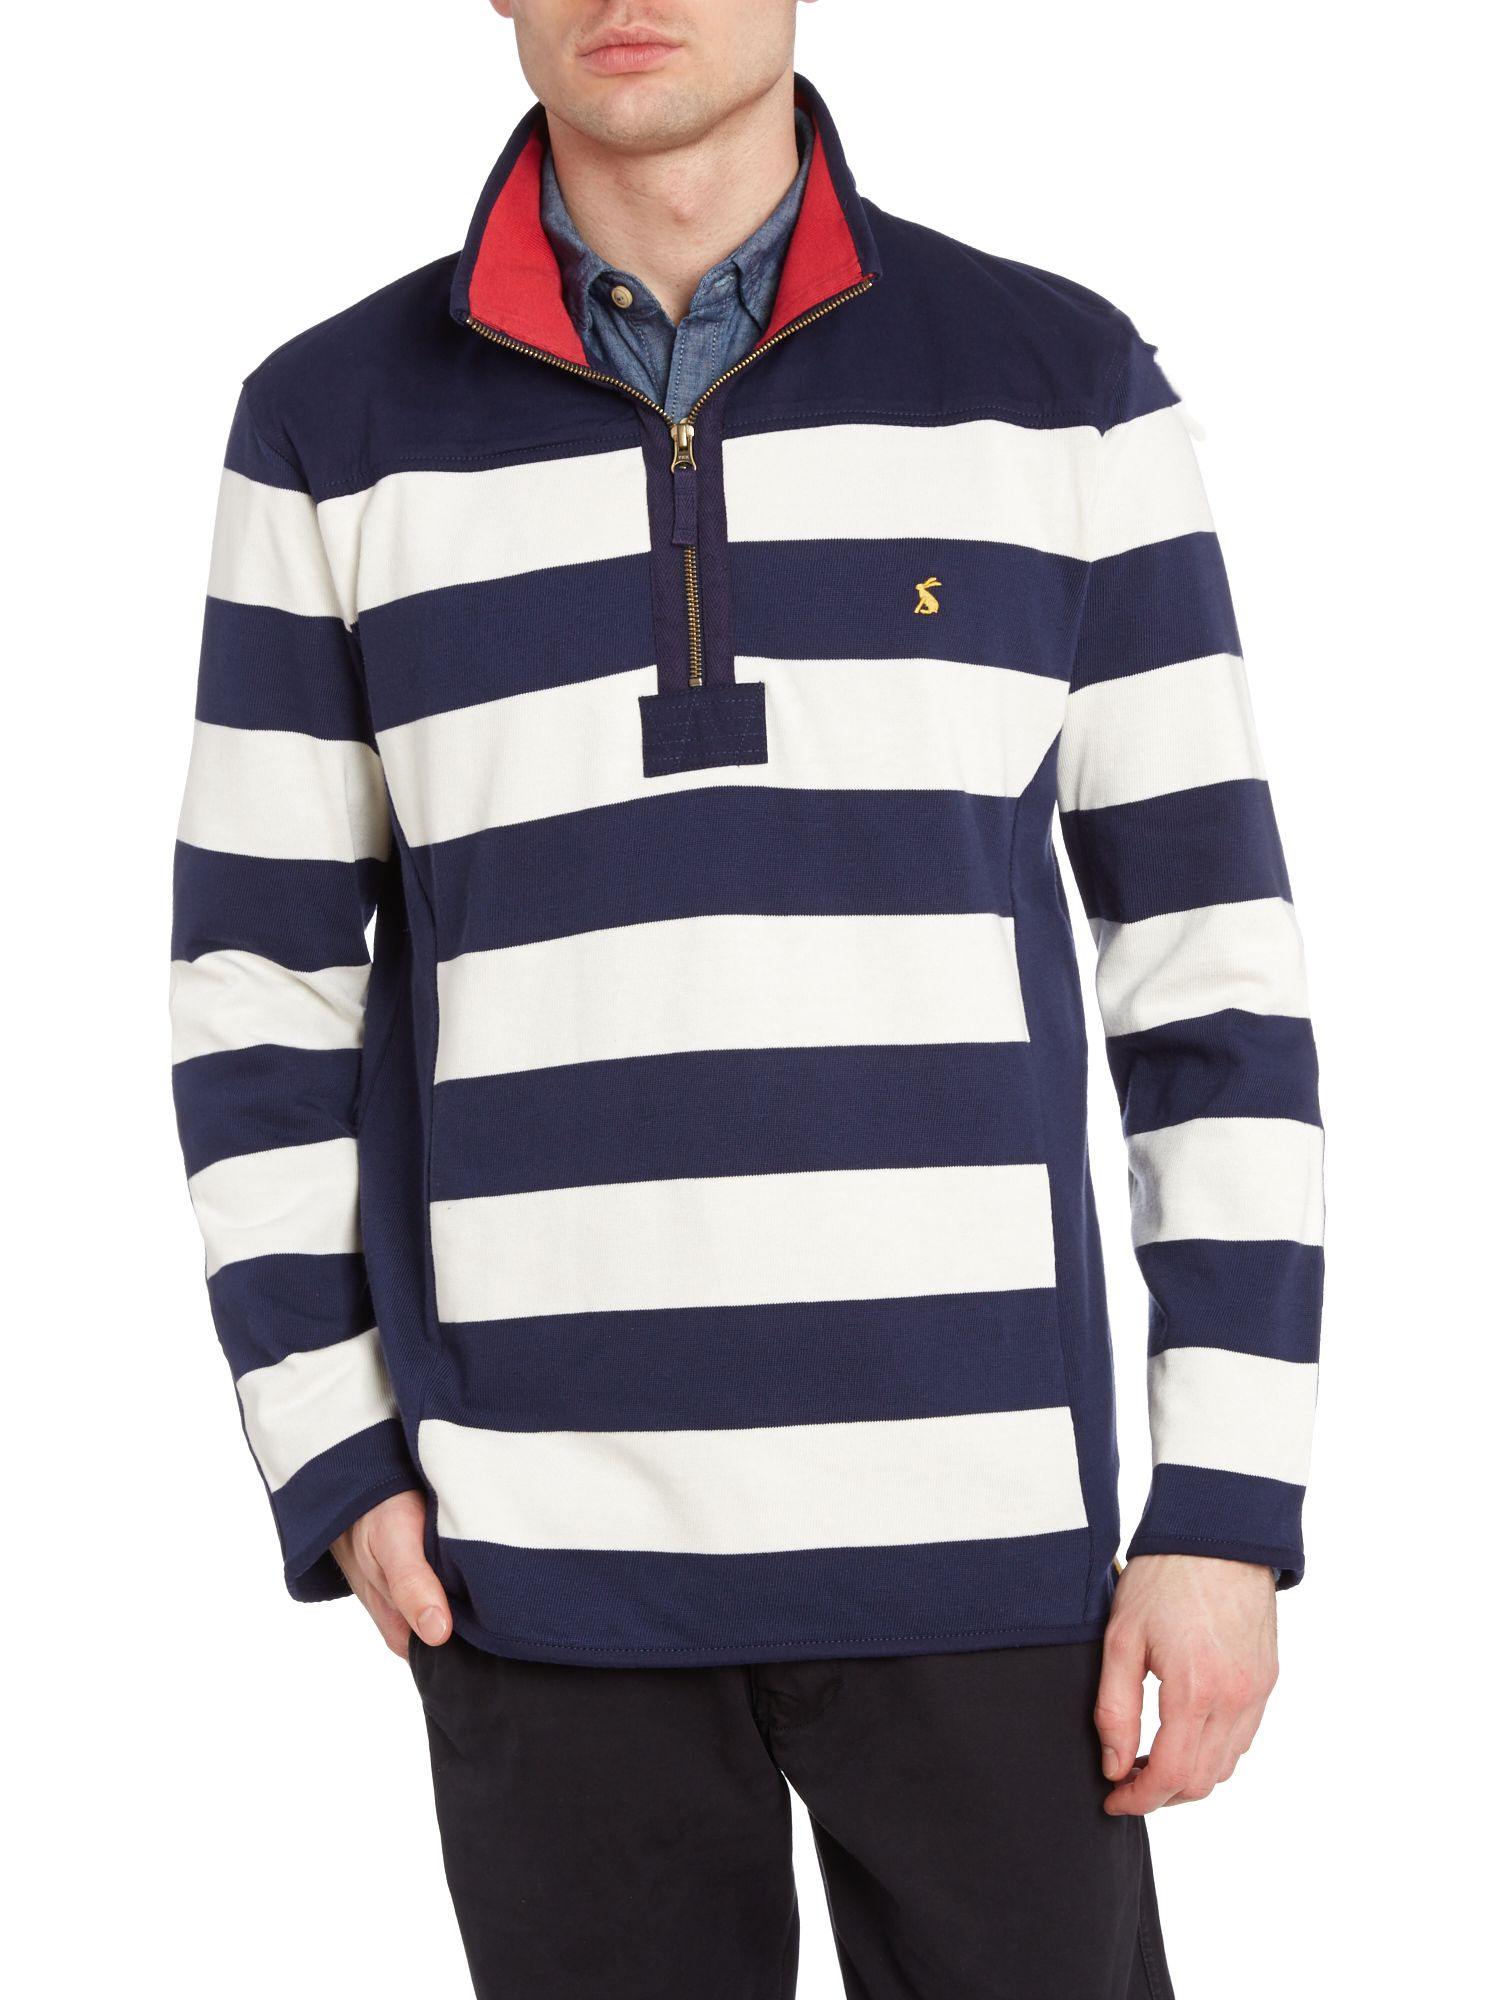 Templetonlight half zip sweatshirt